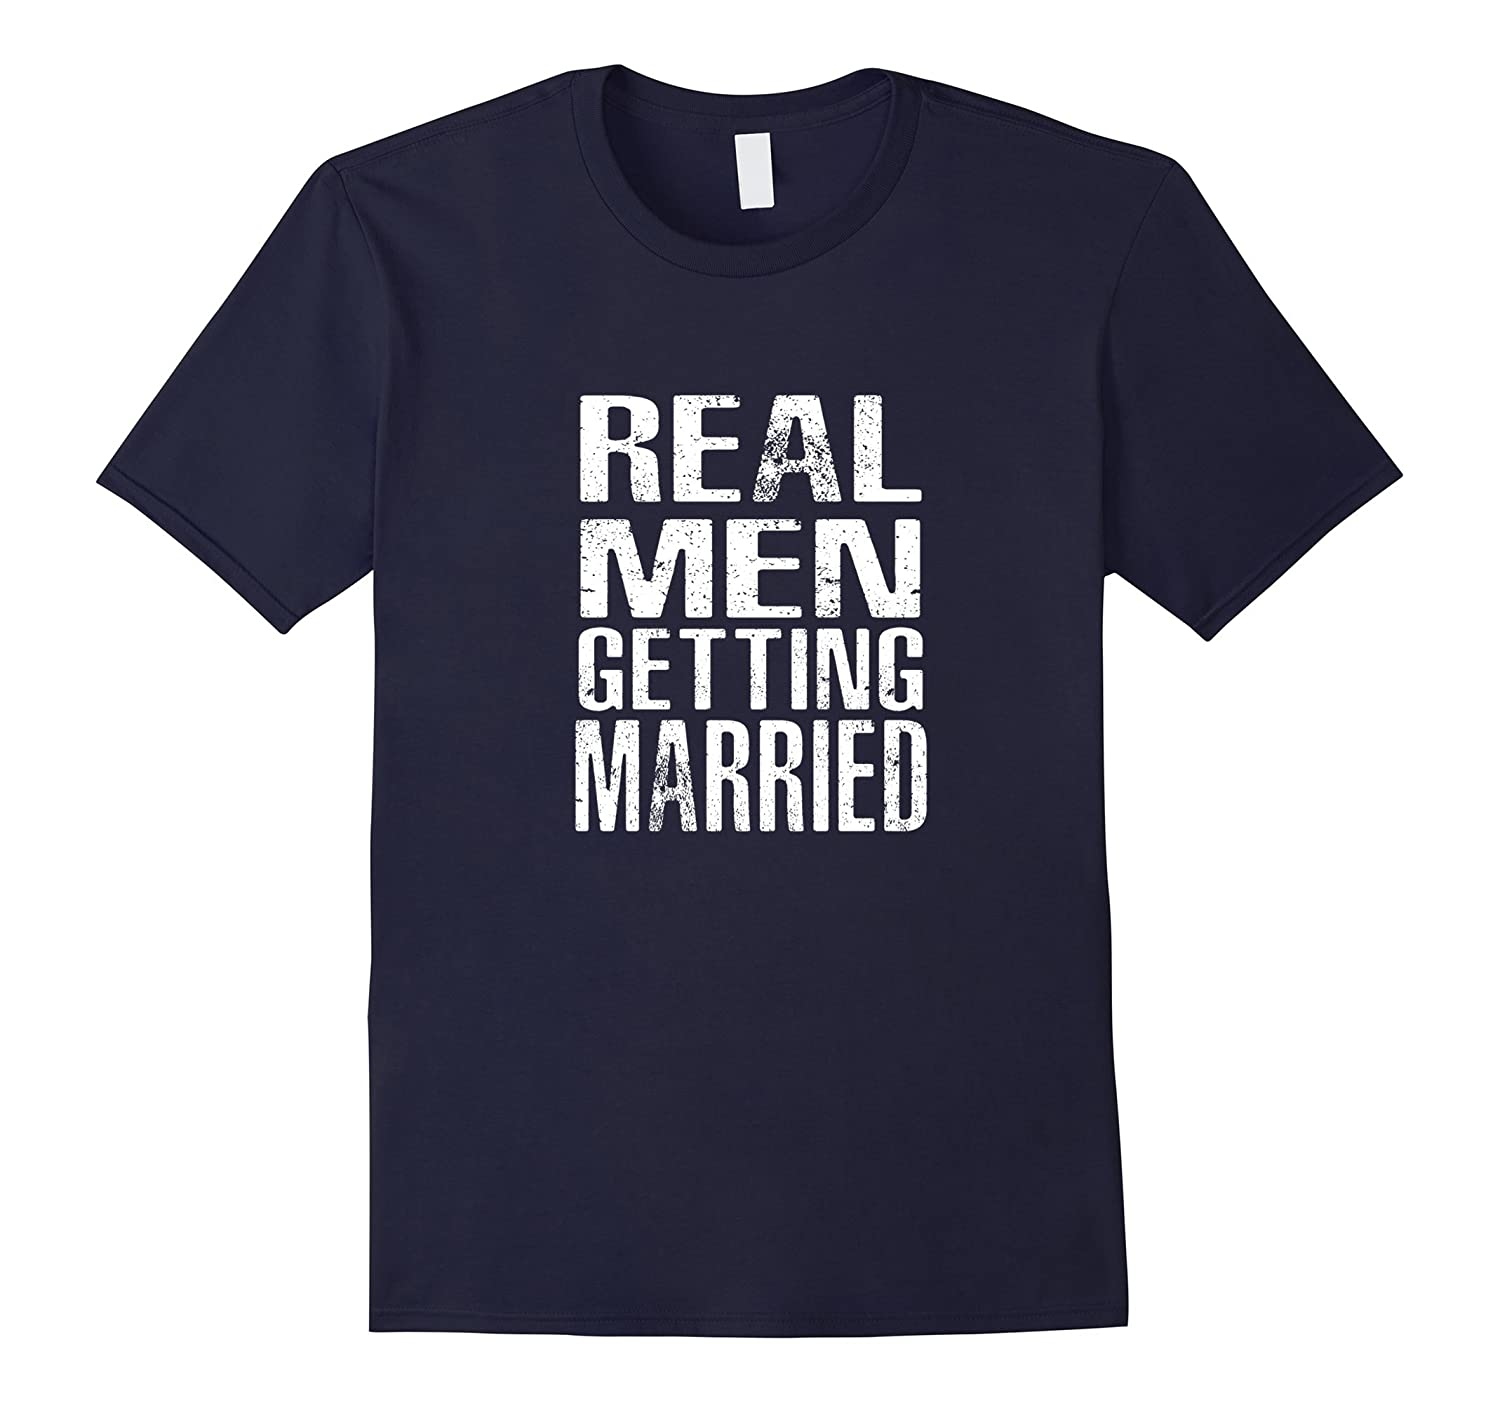 Real Men Getting Married - Mens Bachelor Party Funny T-Shirt-CD